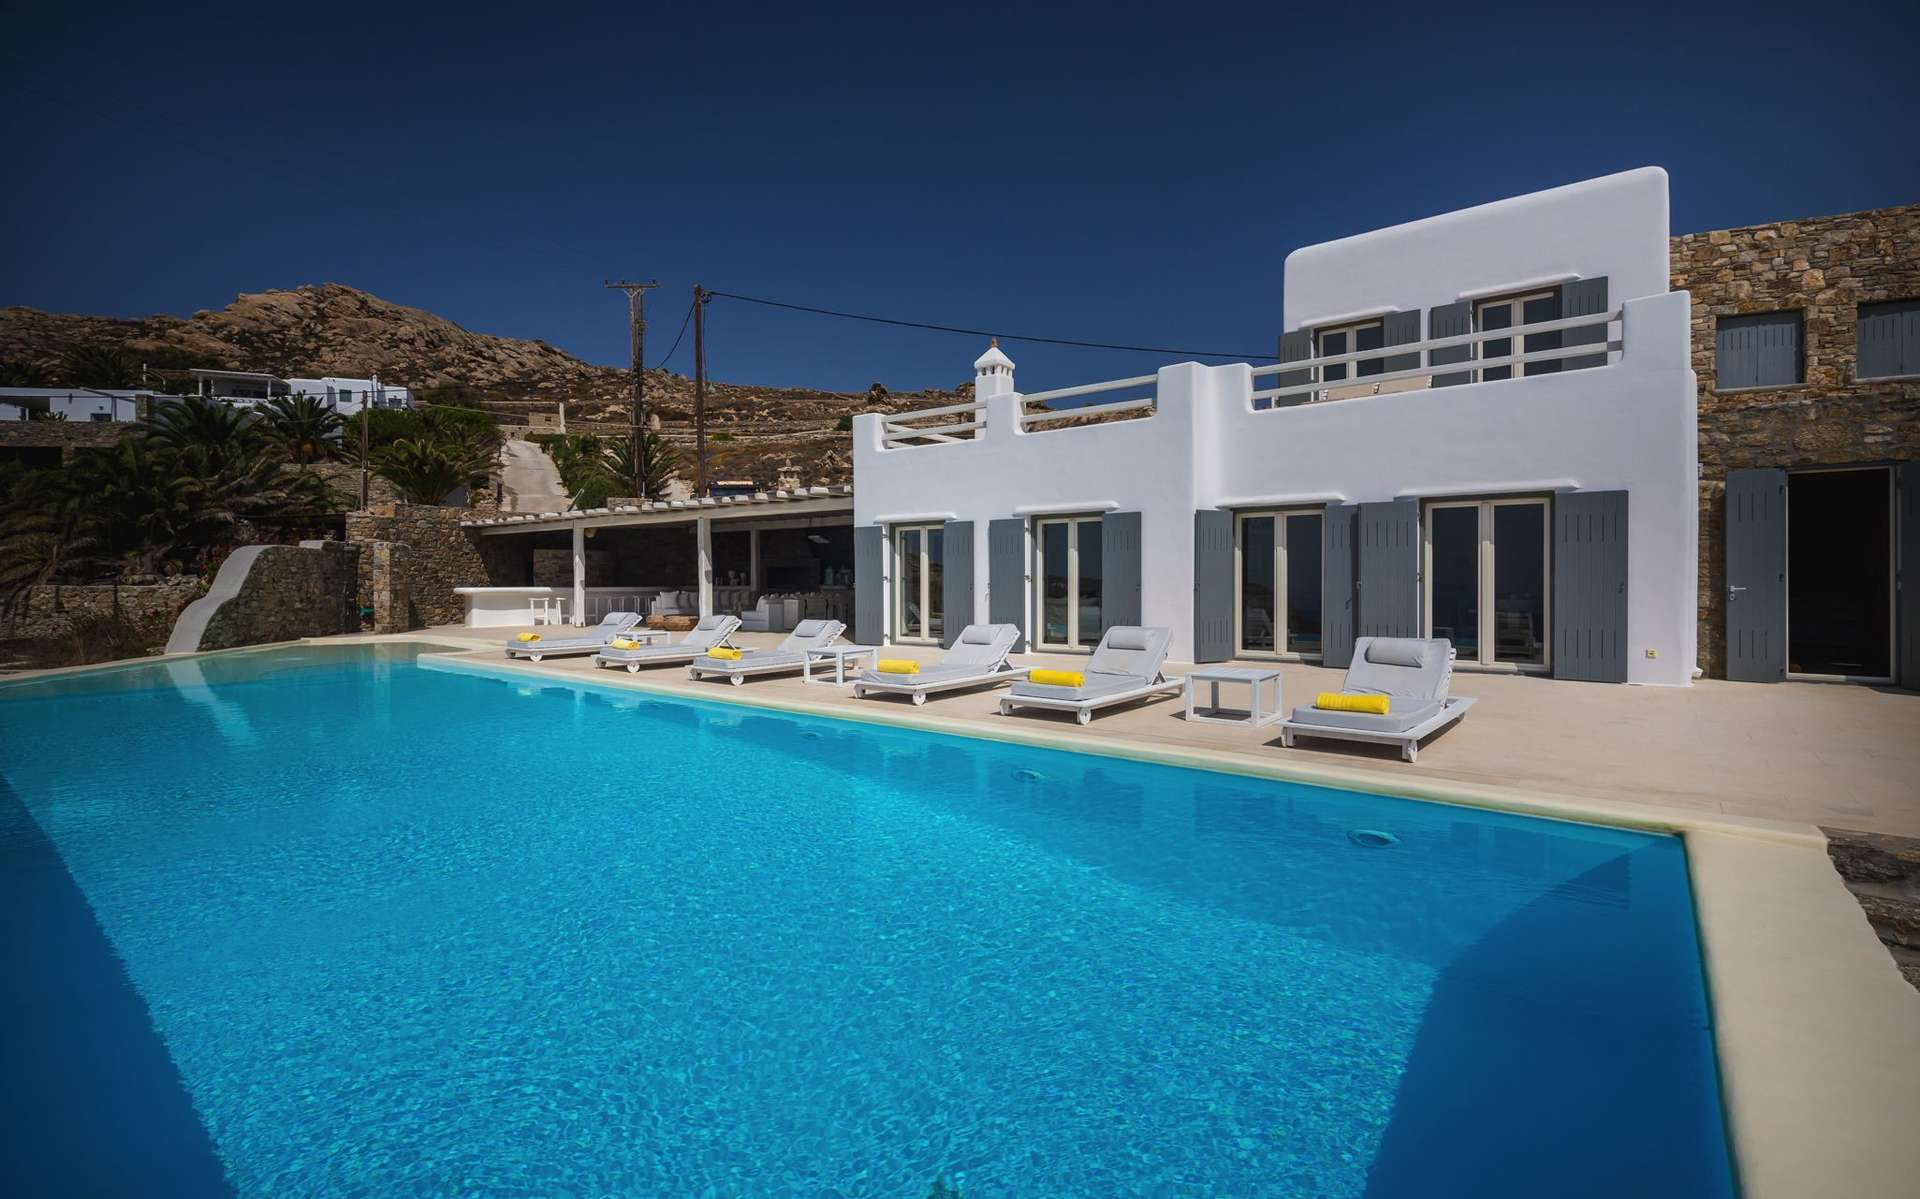 Luxury vacation rentals europe - Greece - Mykonos - Elia - Divina - Image 1/28